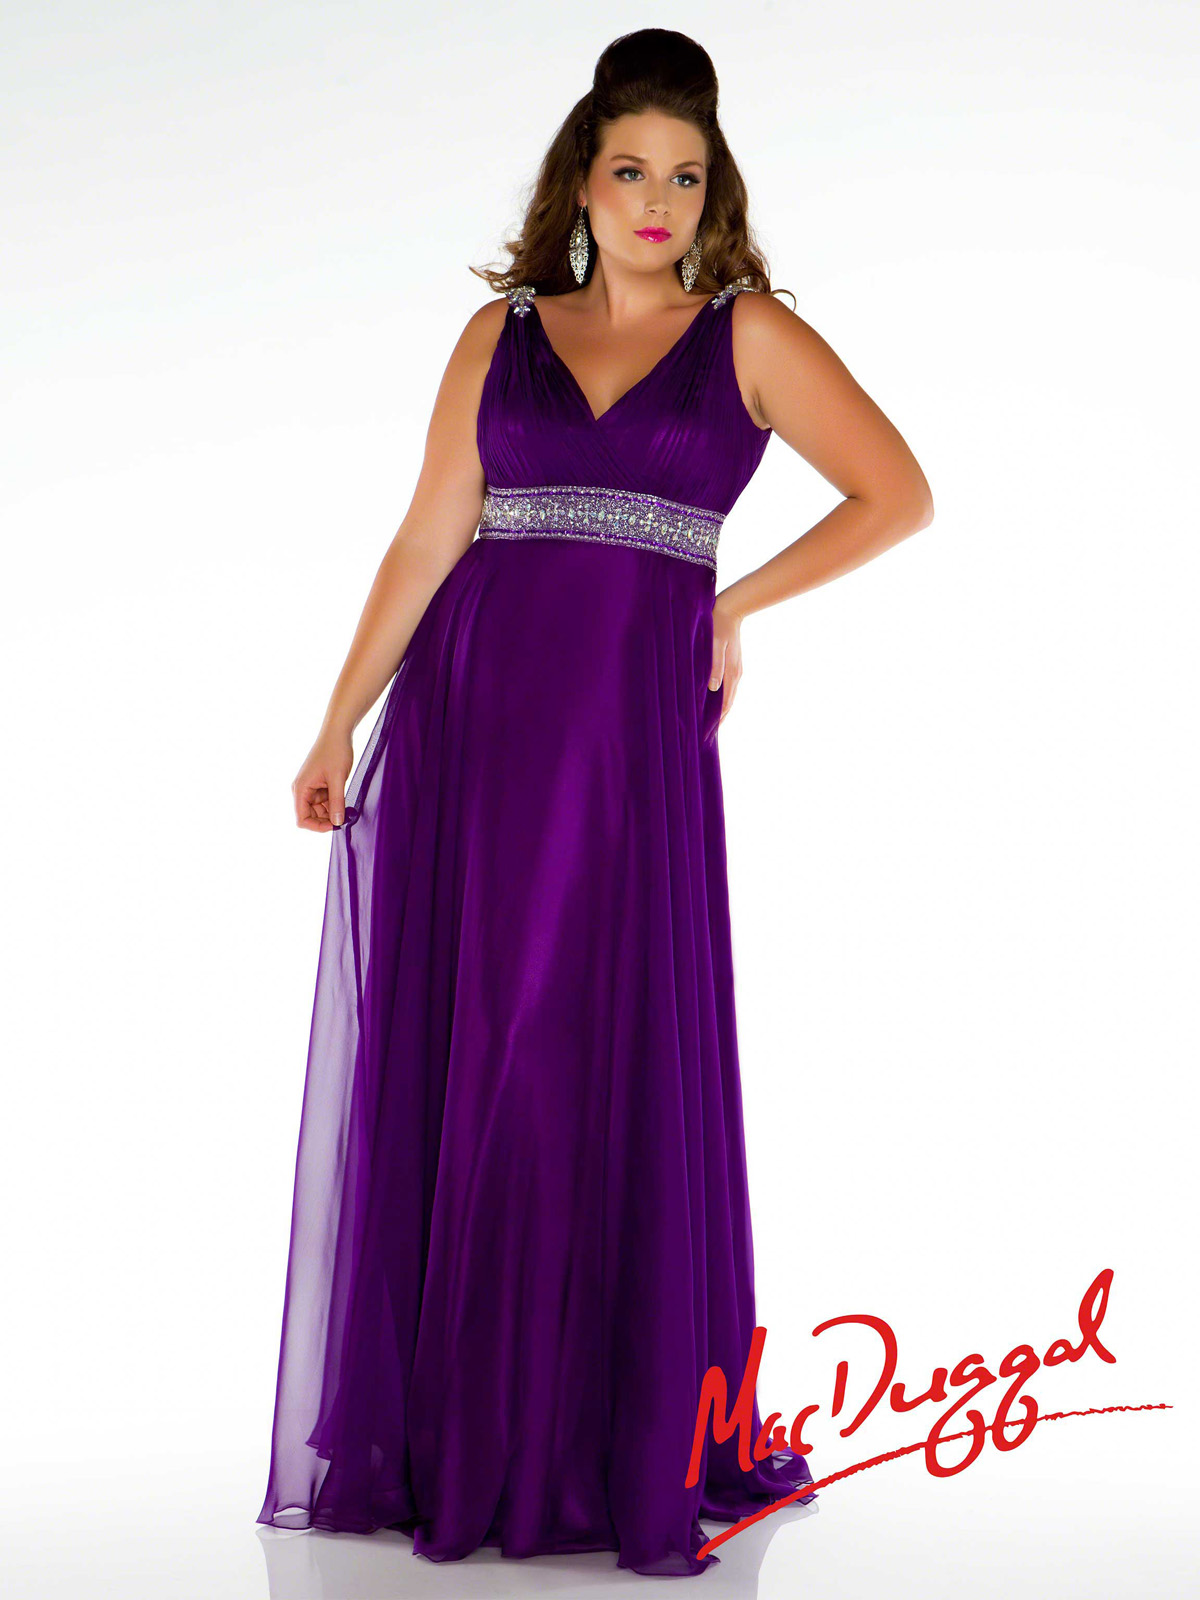 Macys Plus Size Semi Formal Dresses - Ficts